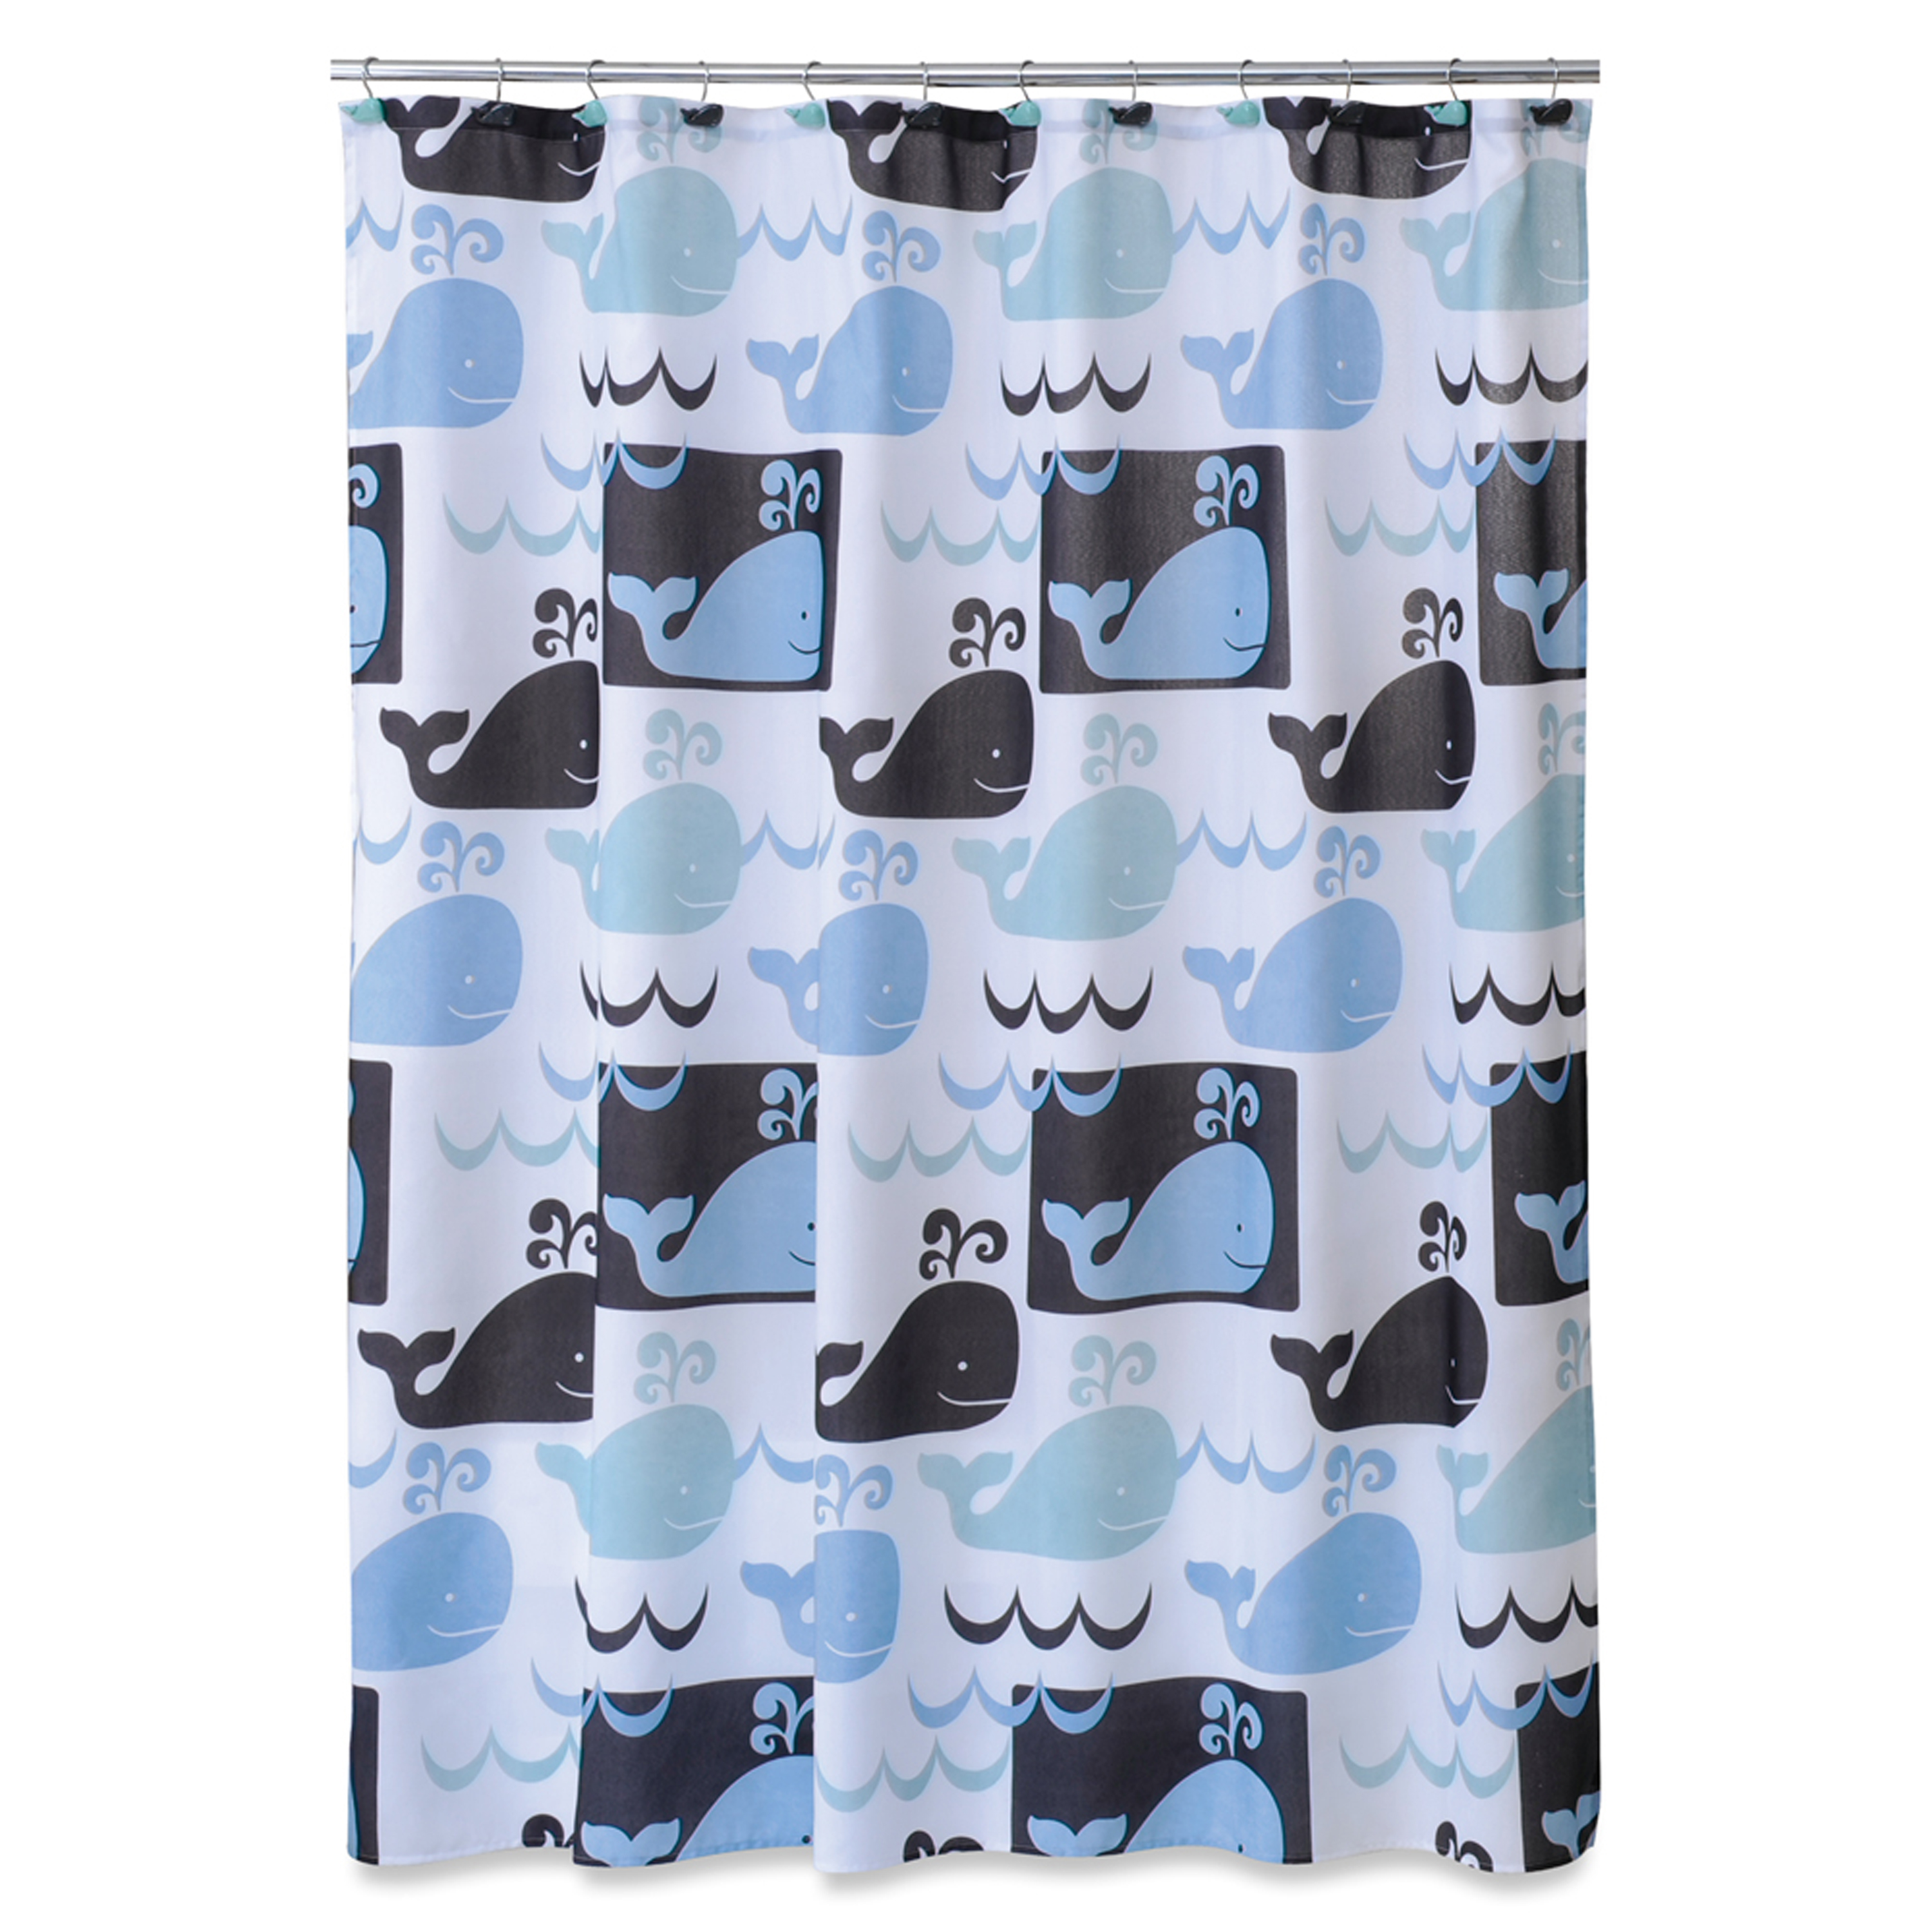 Whale Watch Fabric Shower Curtain